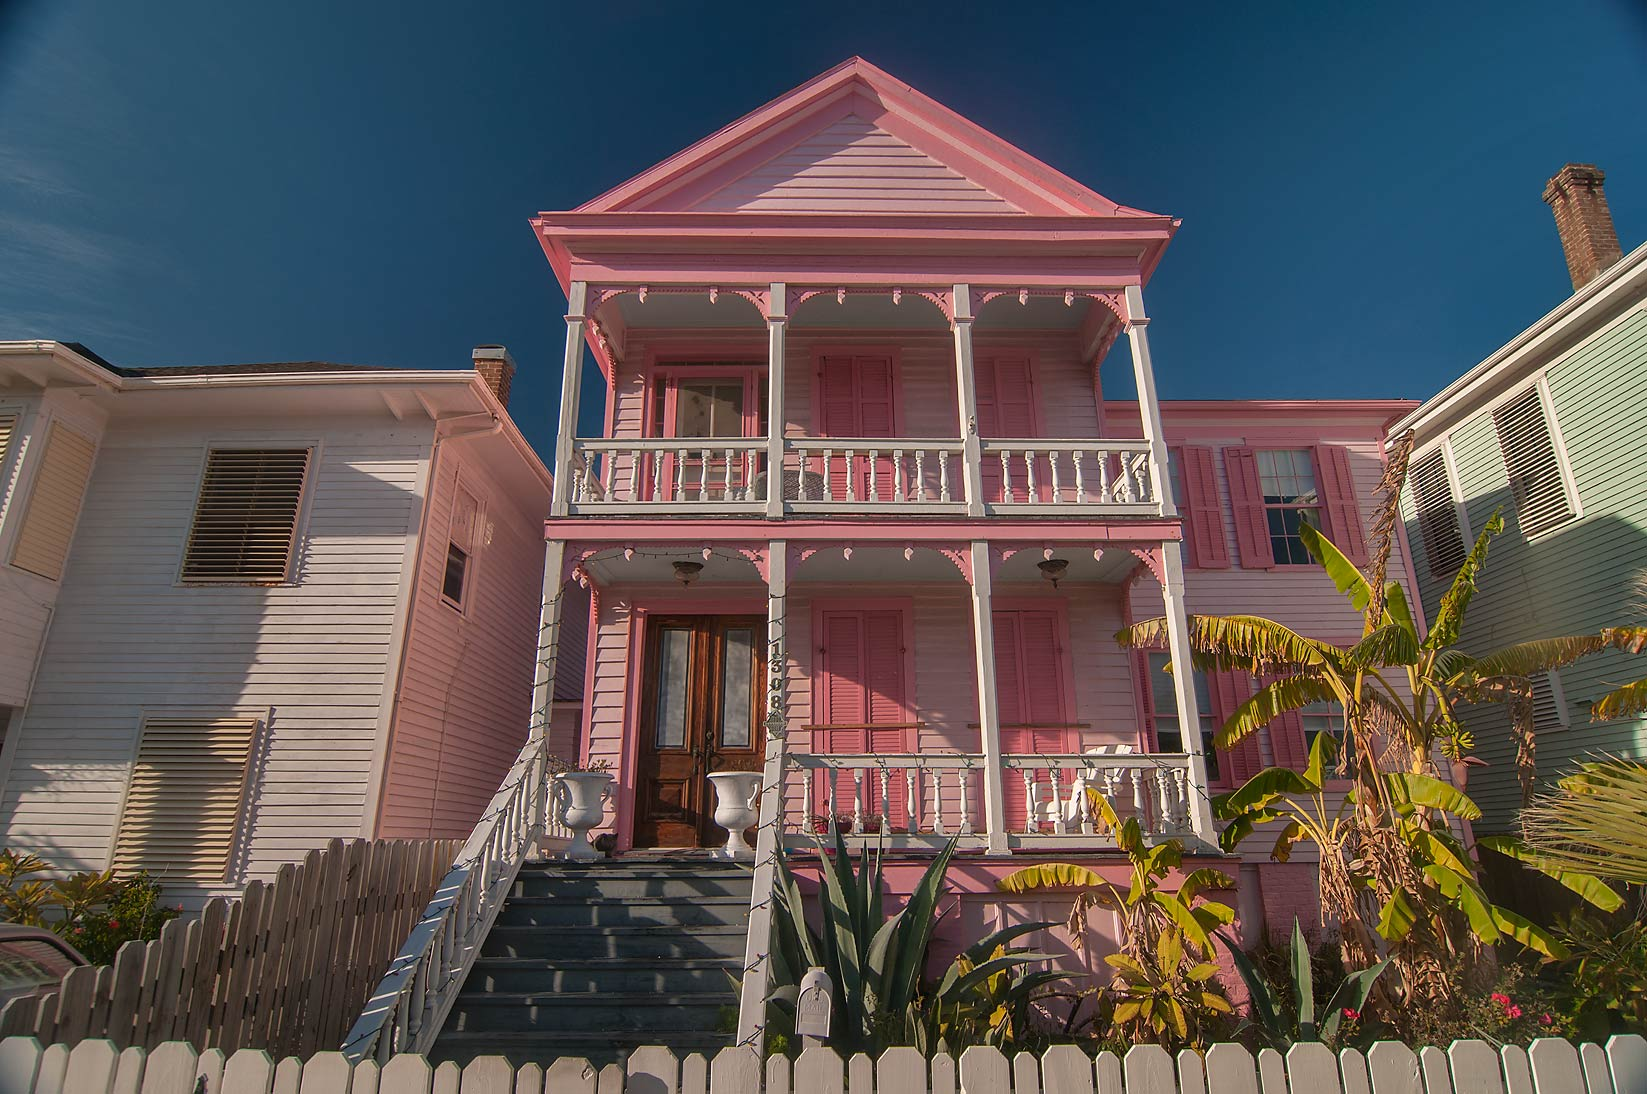 Pink house at 1400-1498 Church Rear St. in East End Historic District. Galveston, Texas